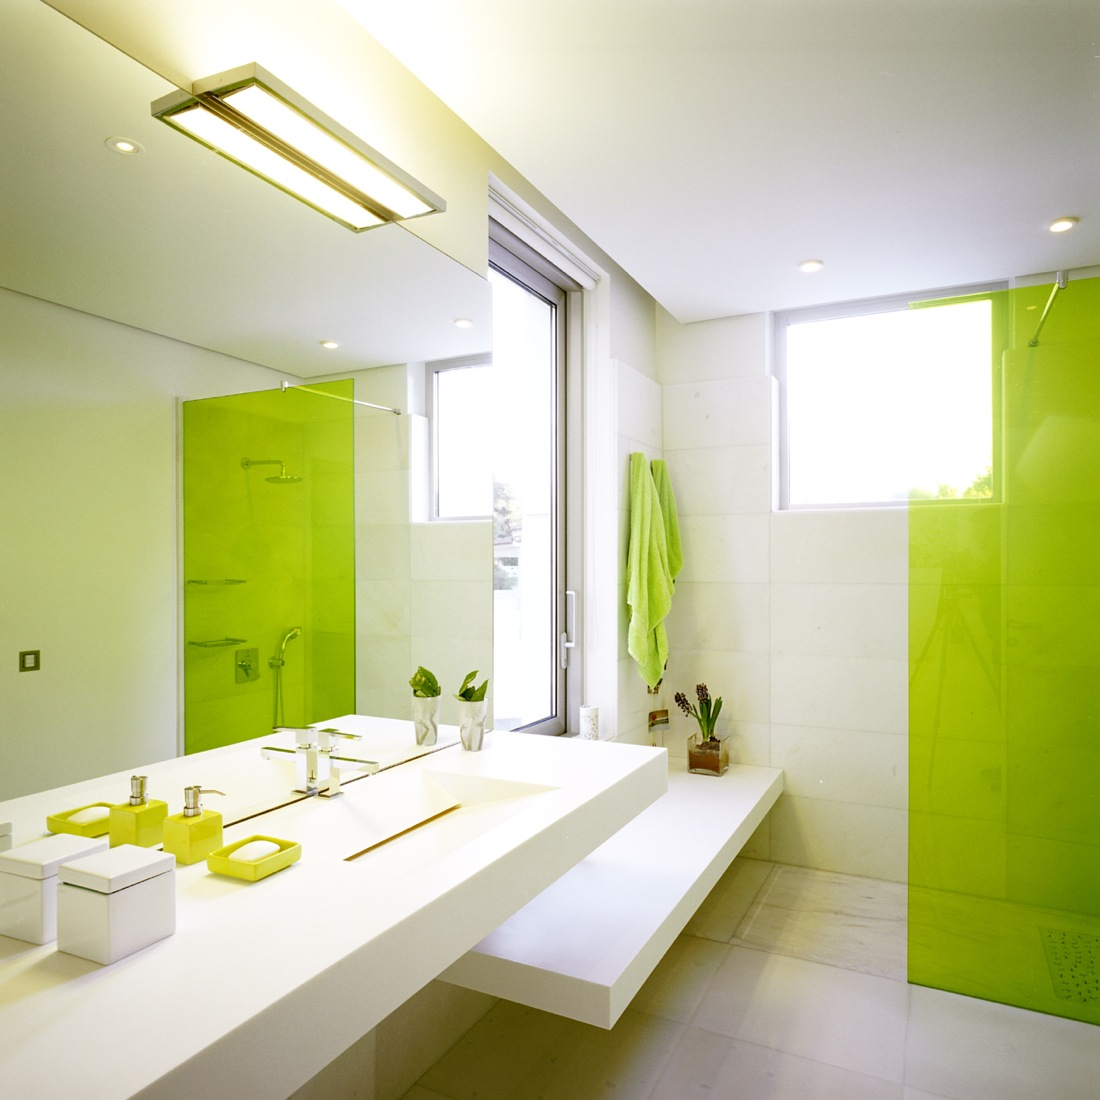 Minimalist bathroom designs home designs project Bathroom interior designs photos